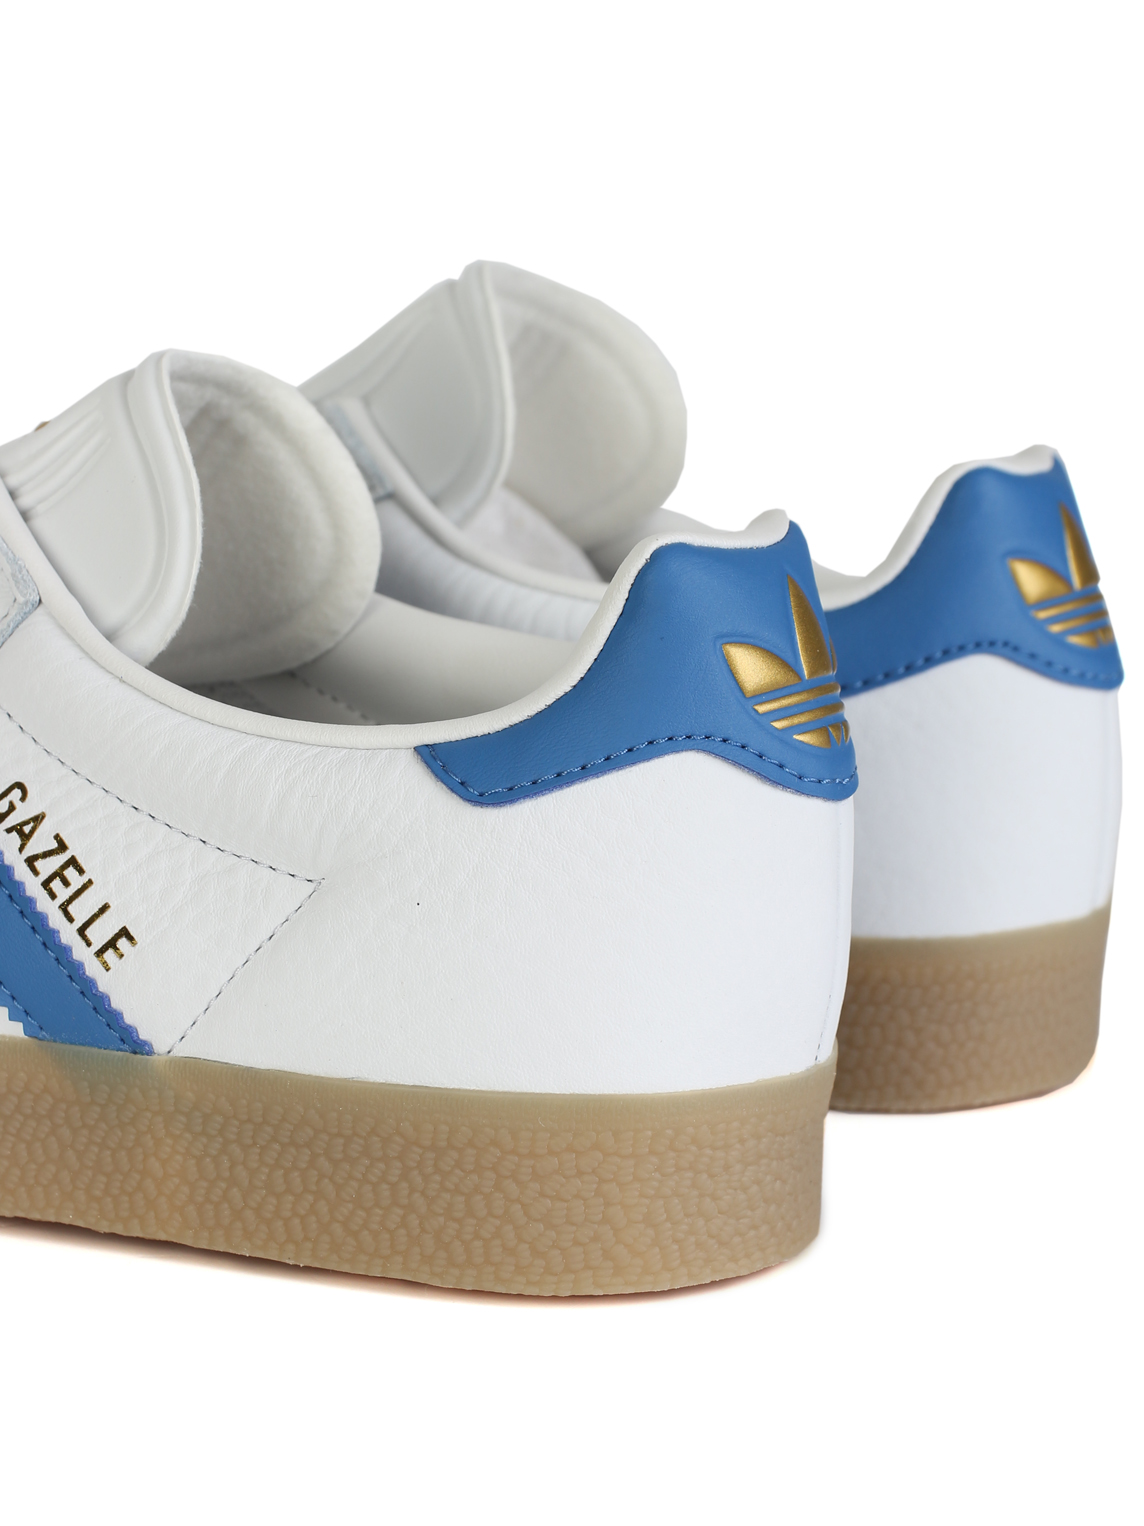 best website 95225 5cd13 The Adidas Gazelle Super (CQ2798) is available In-store and Online now at  Xile priced at £85. You can shop the style here with Free UK Mainland  delivery and ...